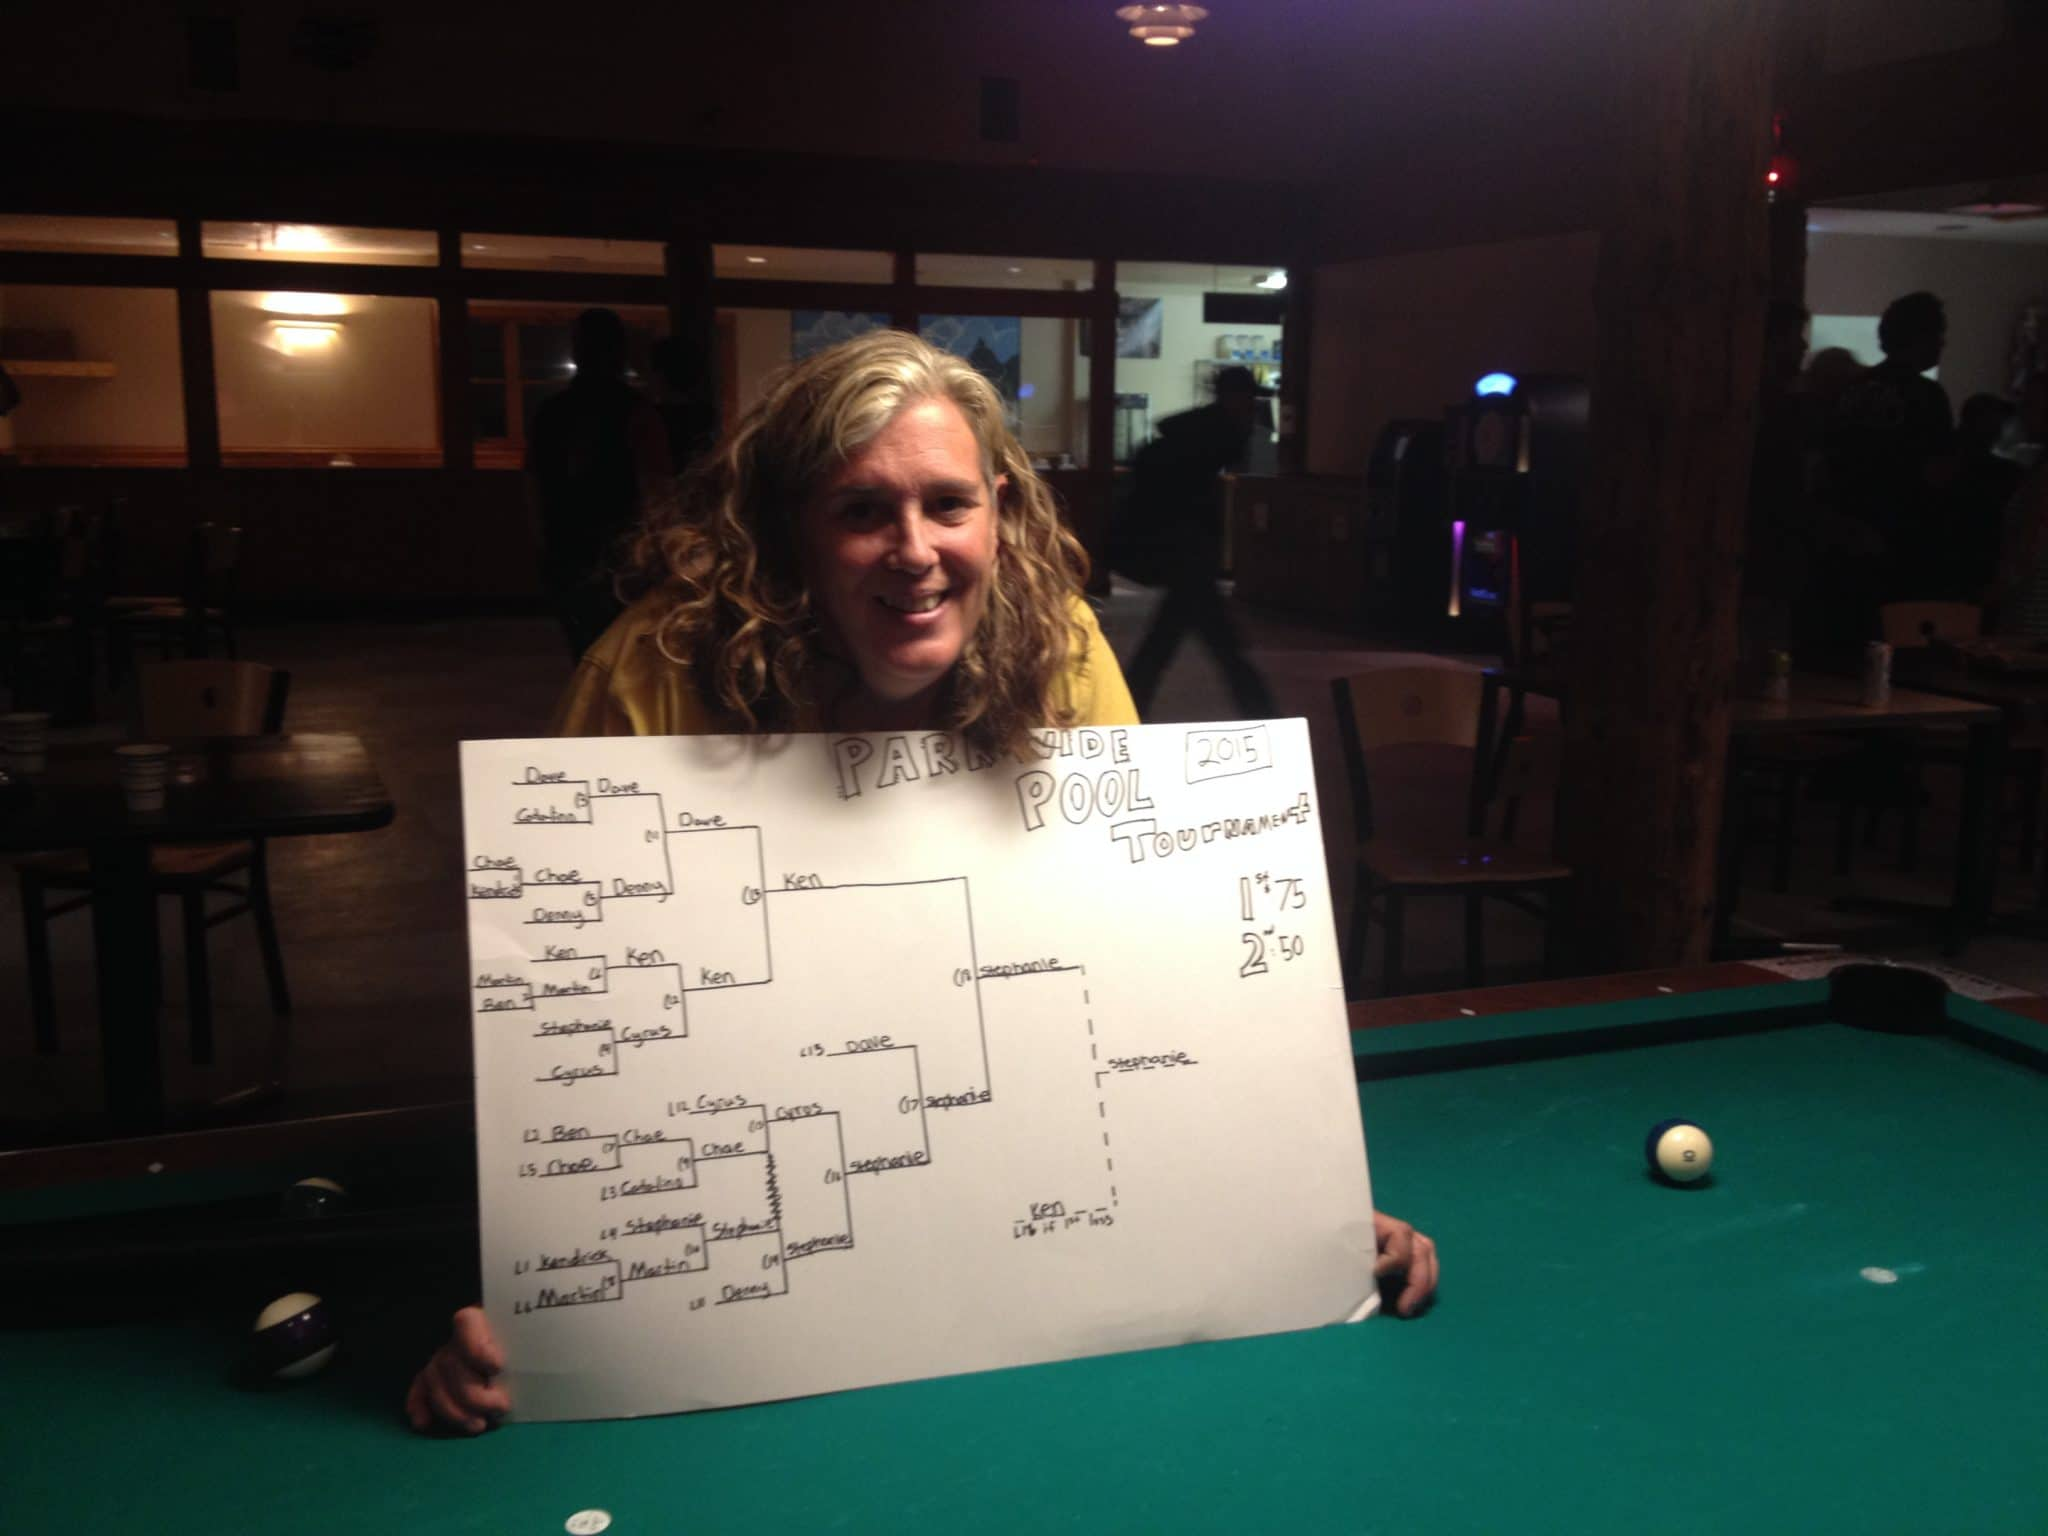 2015 Parkwide Pool champ Stephanie Hughes of Grant Village poses in the Old Faithful pub after her victory in the double elimination tournament.